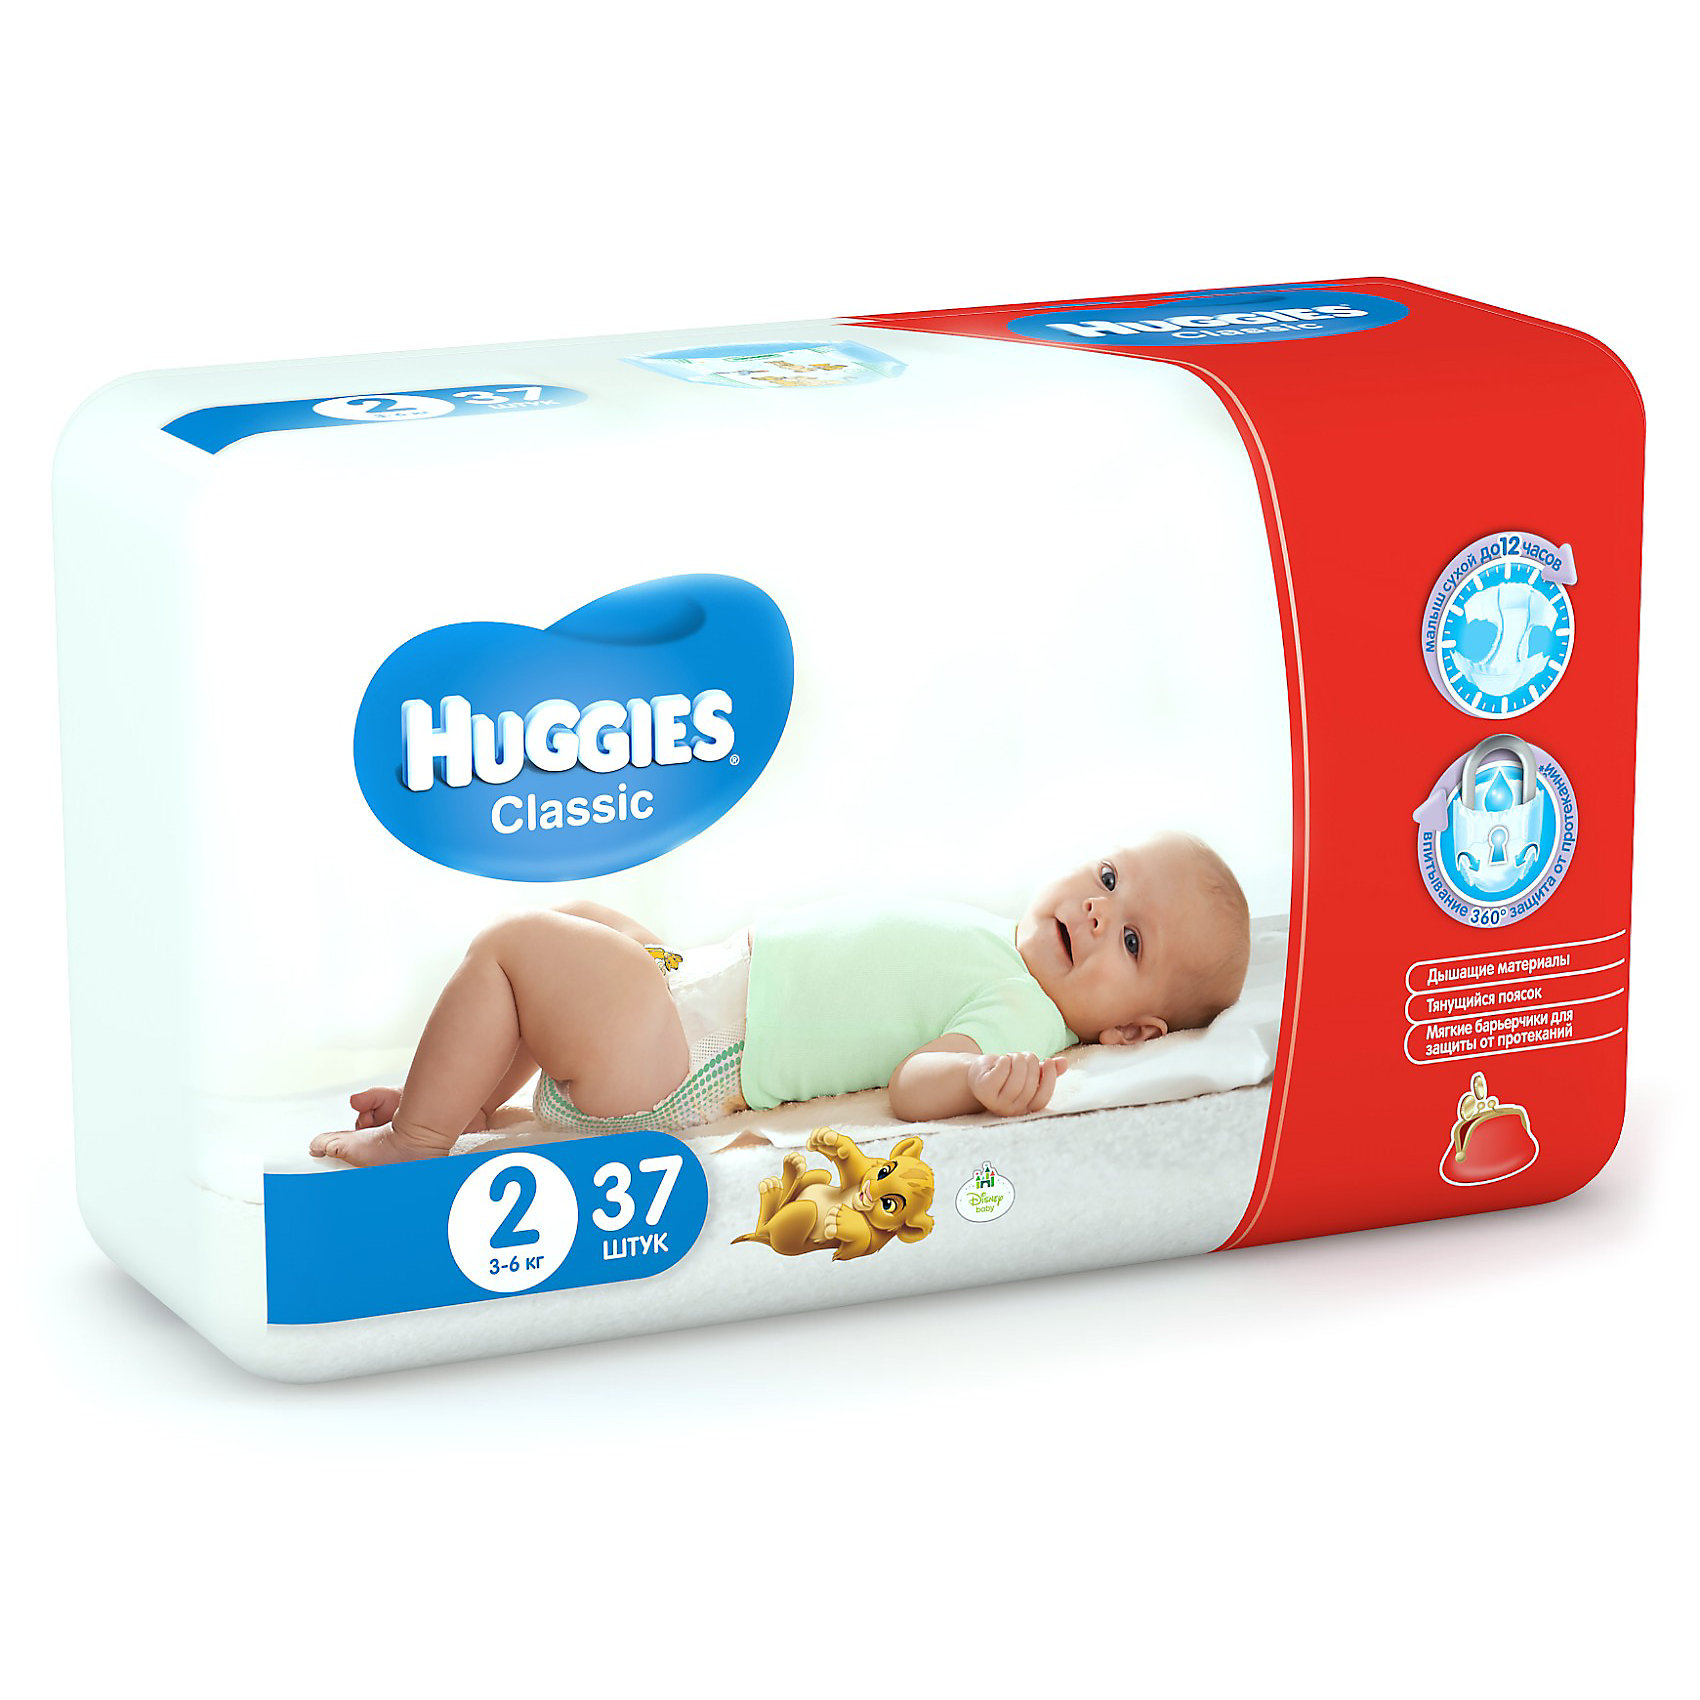 HUGGIES Подгузники Huggies Classic (2) Econom Pack 3-6 кг, 37 шт. 2 3 4or 3brs new pull pack of 2